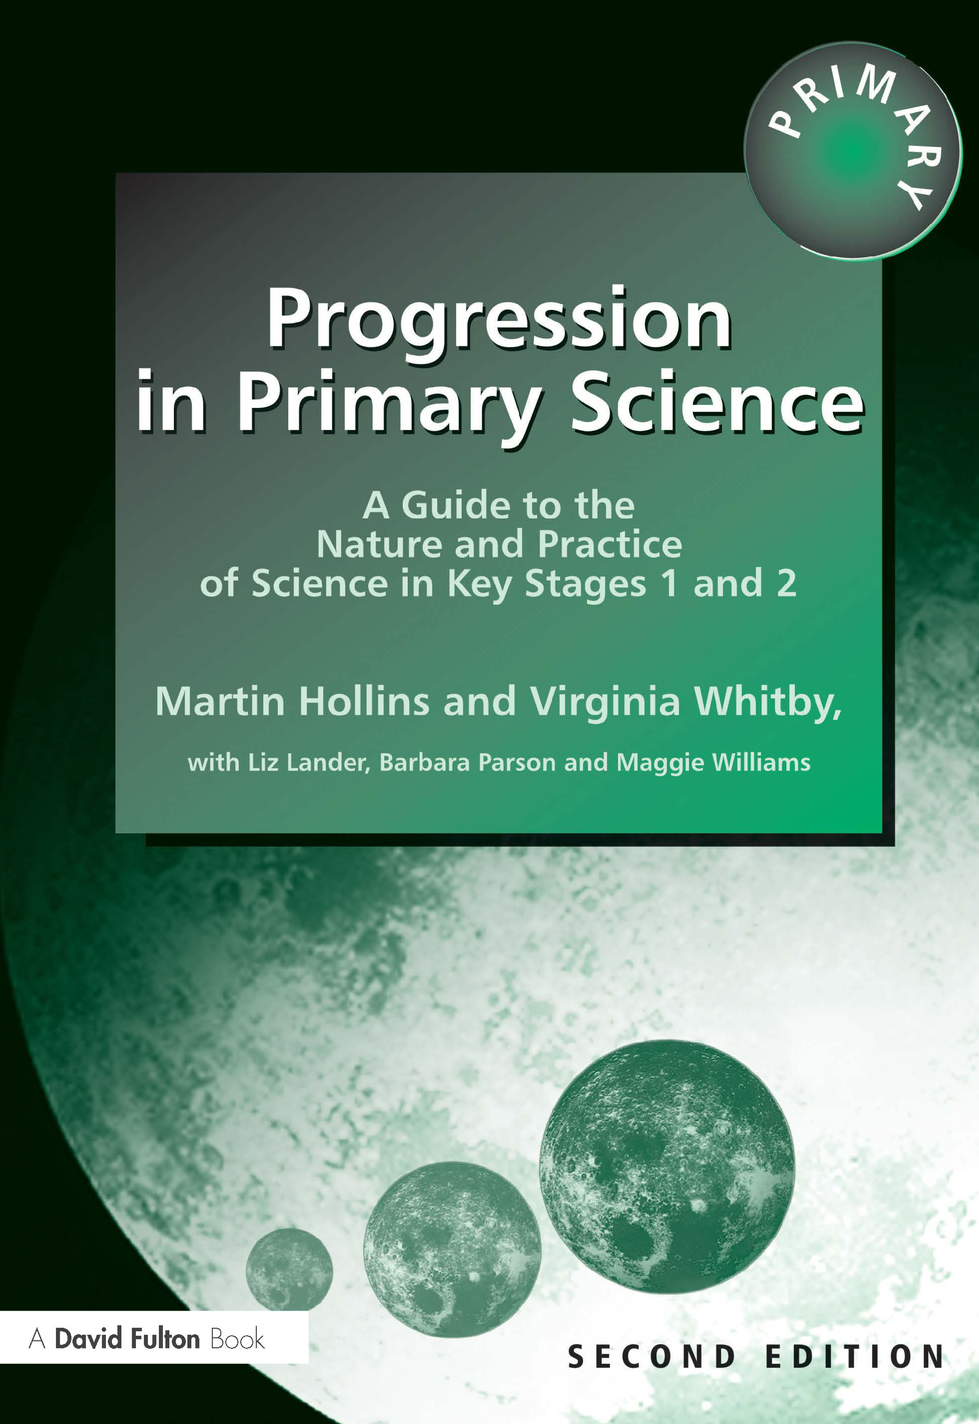 Progression in Primary Science A Guide to the Nature and Practice of Science in Key Stages 1 and 2